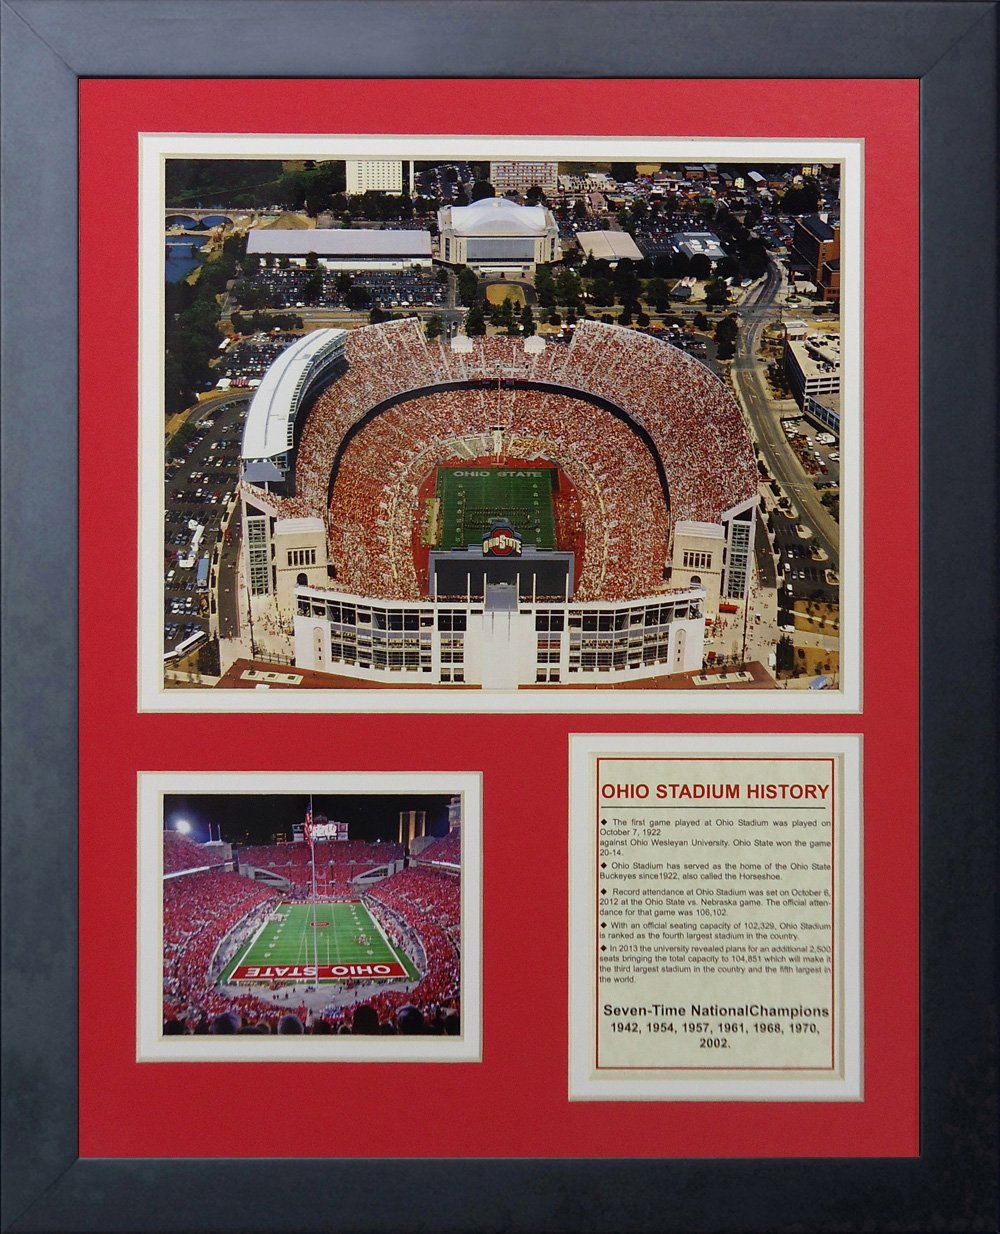 Legends Never Die Ohio State Buckeyes Ohio Stadium Framed Photo Collage, 11 by 14-Inch